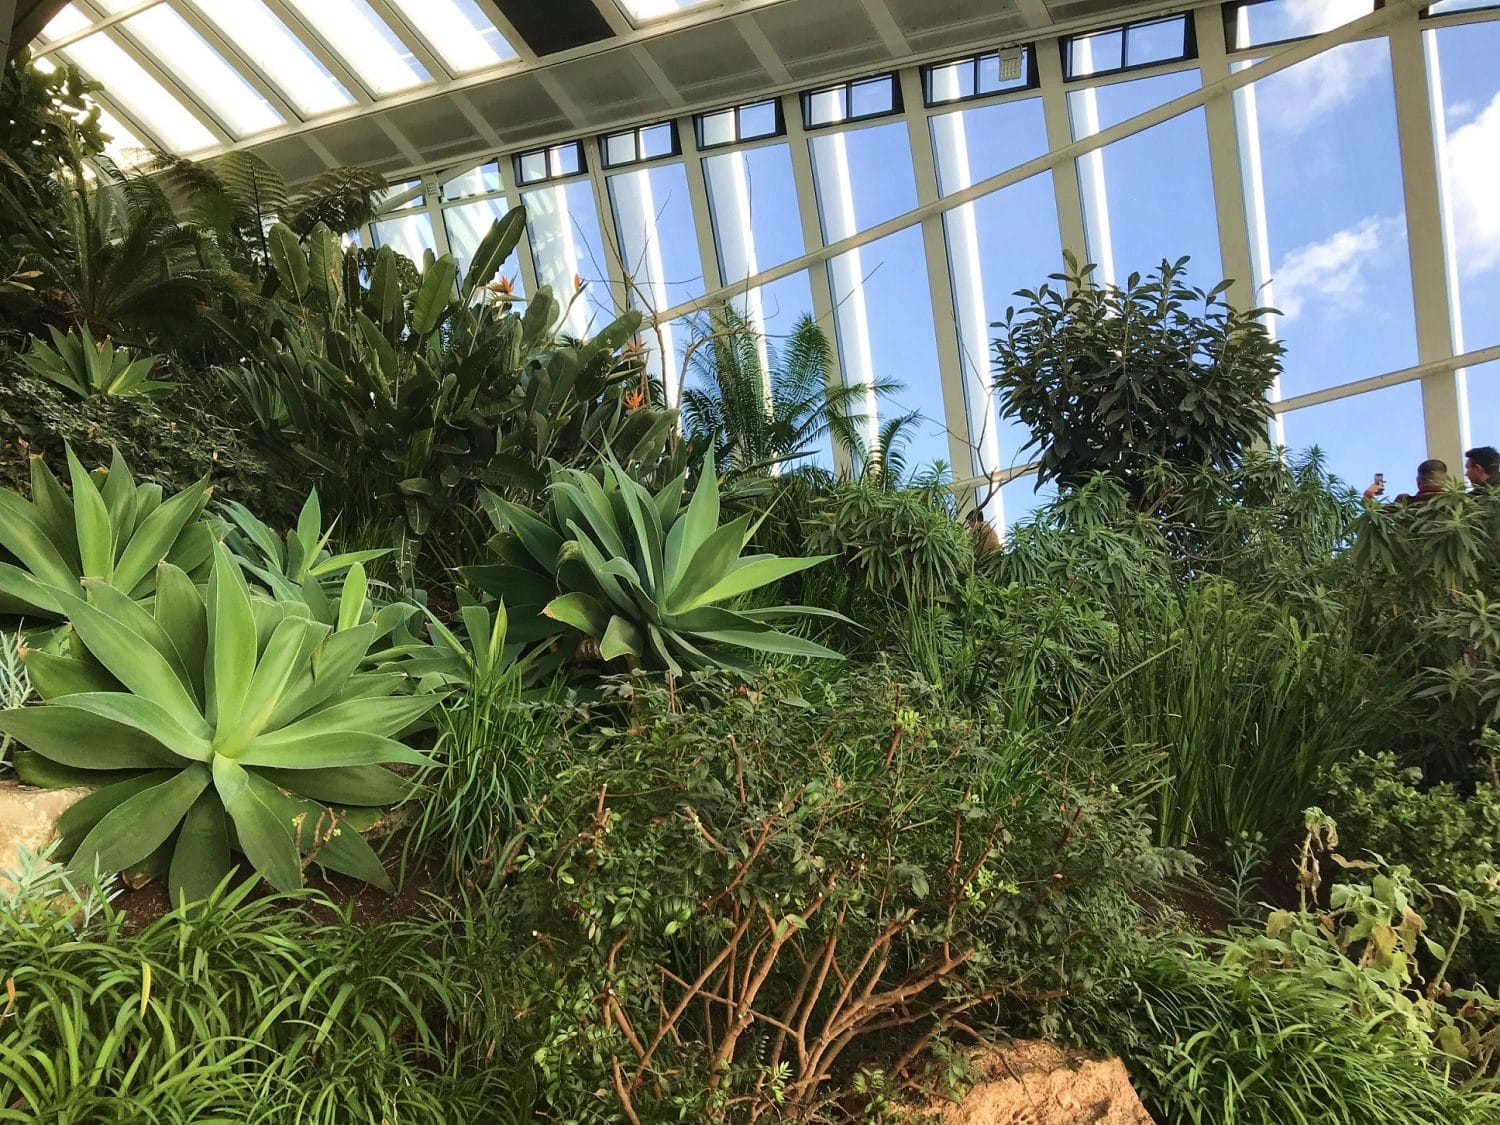 Get great views of London from the Sky Garden